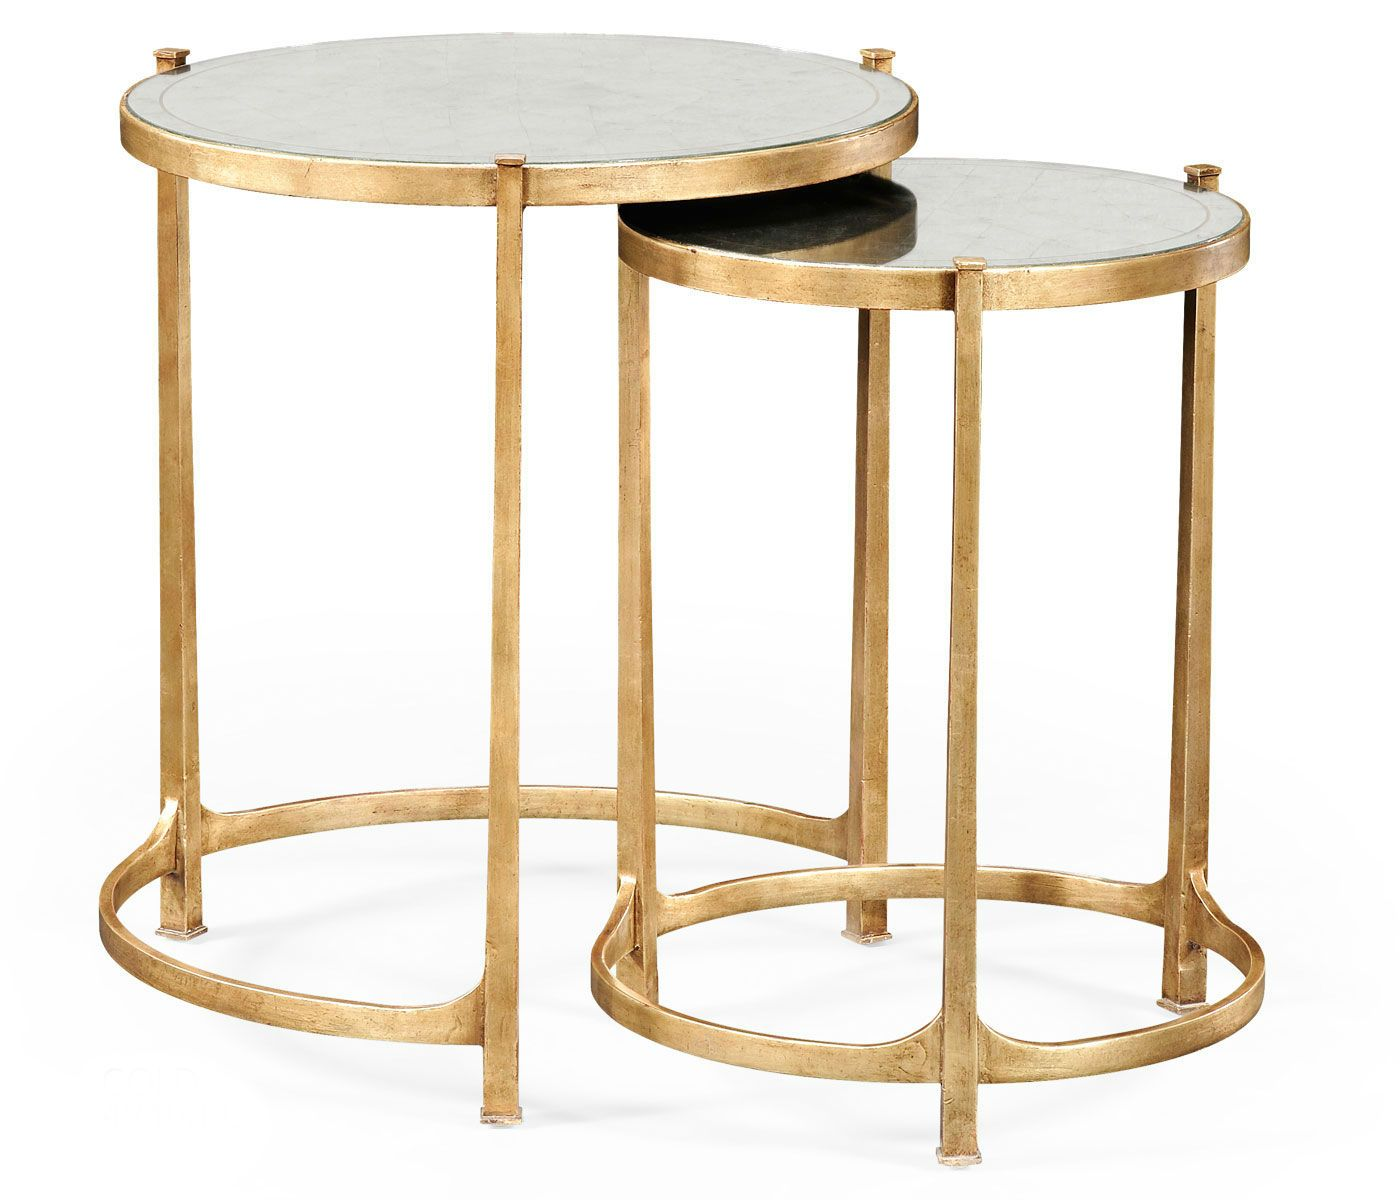 elegant tall antiqued mirrored nesting tables gold accent table gilt partner side end console coffee available hospitality antique dining chairs butterfly tiffany lamp modern